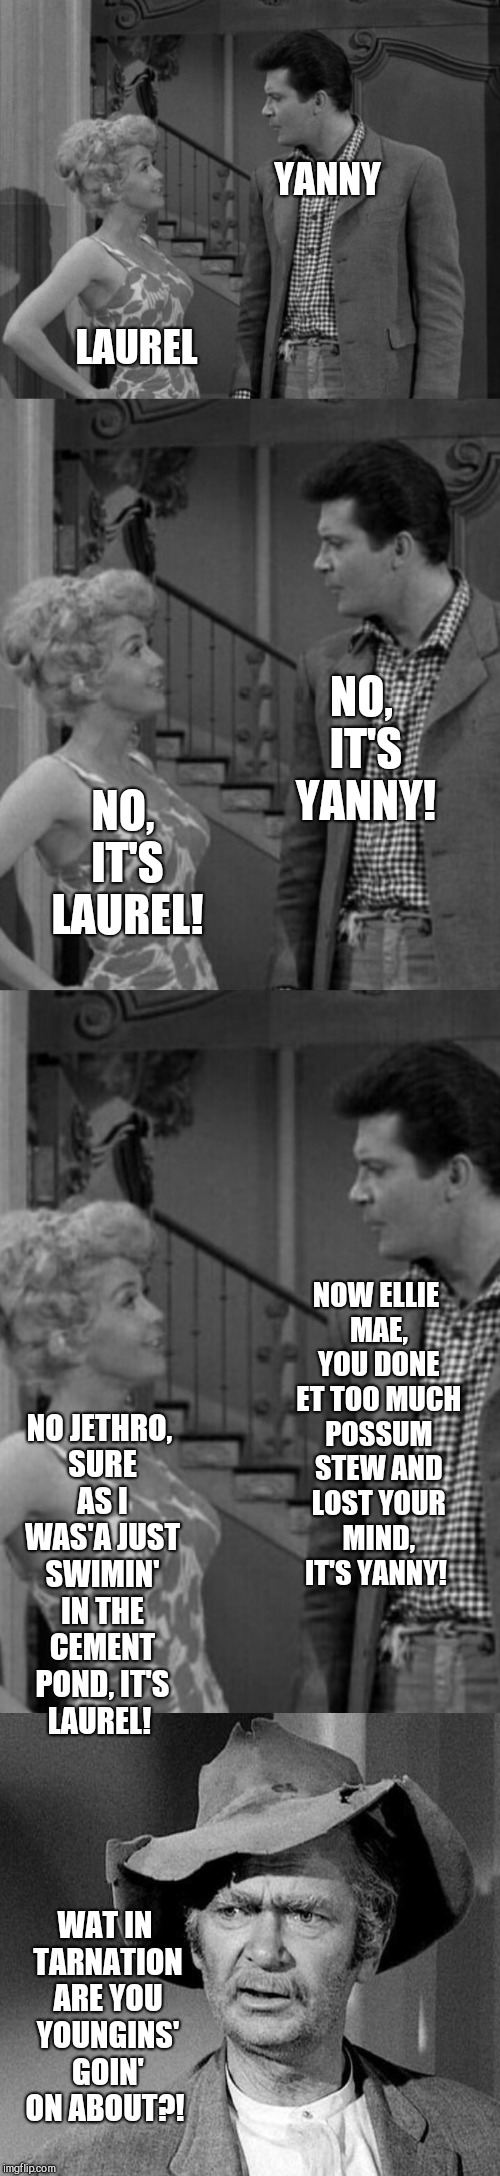 Yanny Vs Laurel, Beverly Hillbillies edition  | YANNY LAUREL NO, IT'S YANNY! NO, IT'S LAUREL! NOW ELLIE MAE, YOU DONE ET TOO MUCH POSSUM STEW AND LOST YOUR MIND, IT'S YANNY! NO JETHRO, SUR | image tagged in jbmemegeek,yanny vs laurel,beverly hillbillies,memes | made w/ Imgflip meme maker